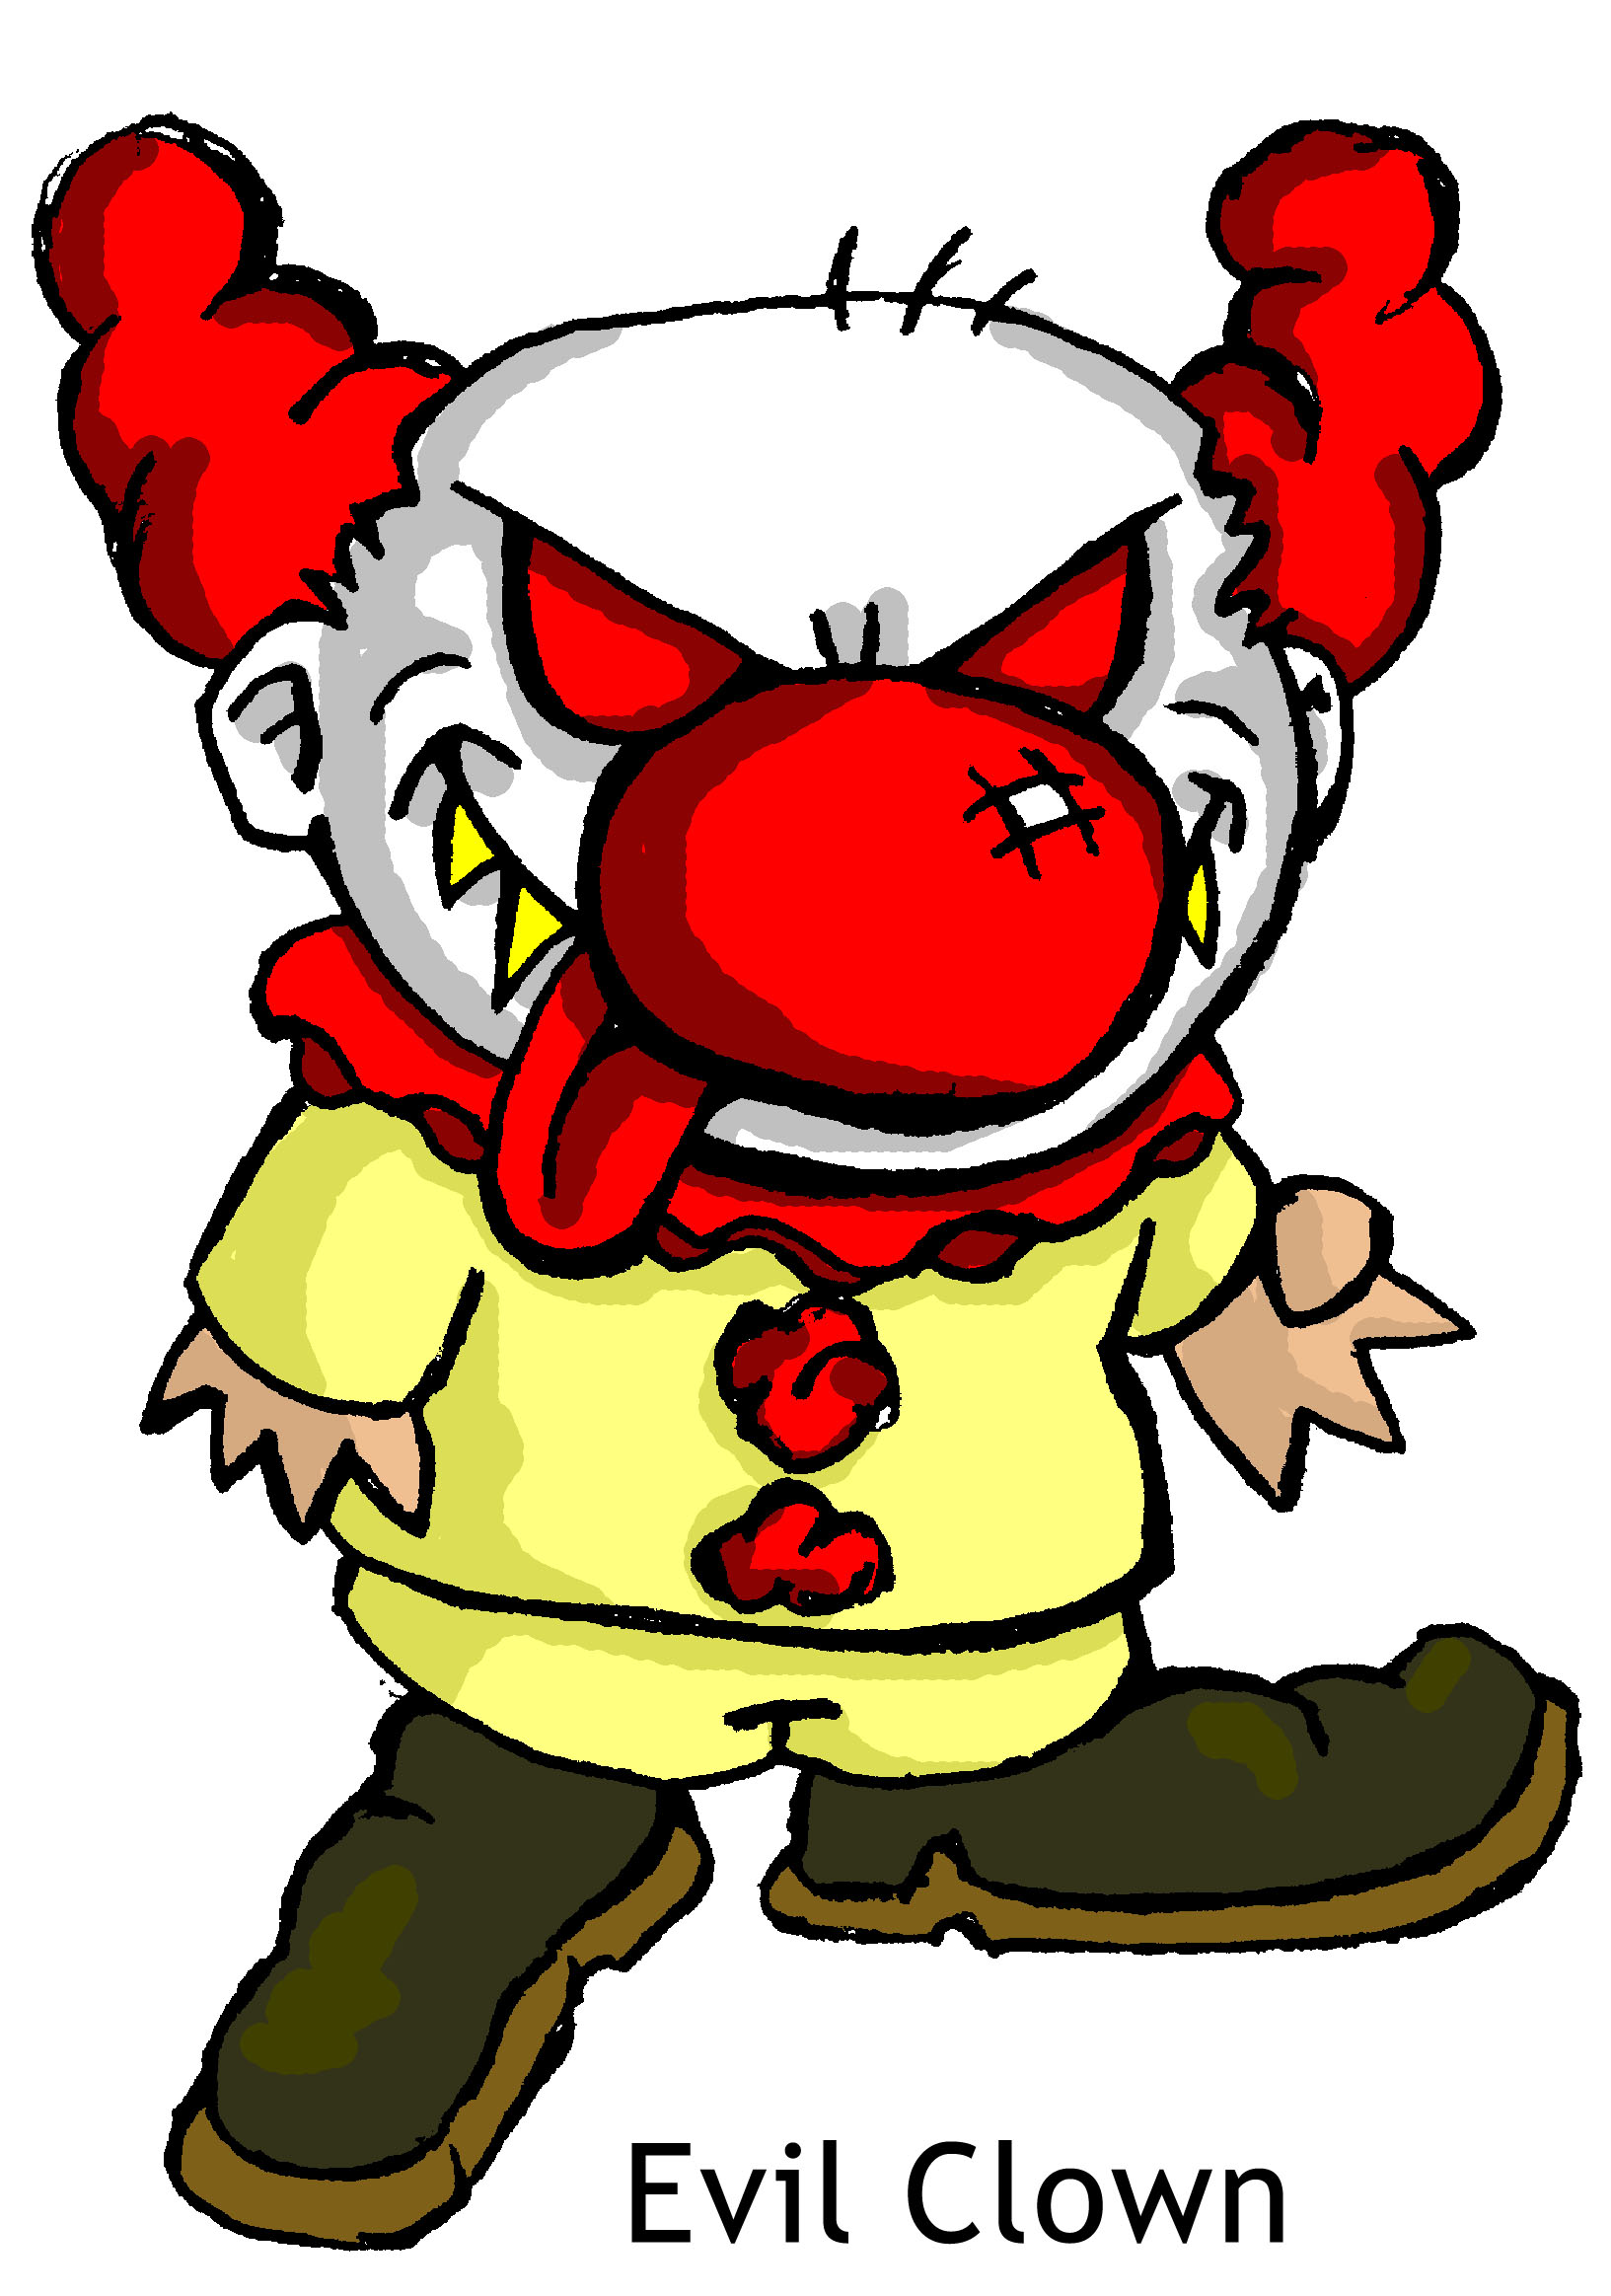 1633x2327 Clown Clipart Scary Amp Clown Clip Art Scary Images